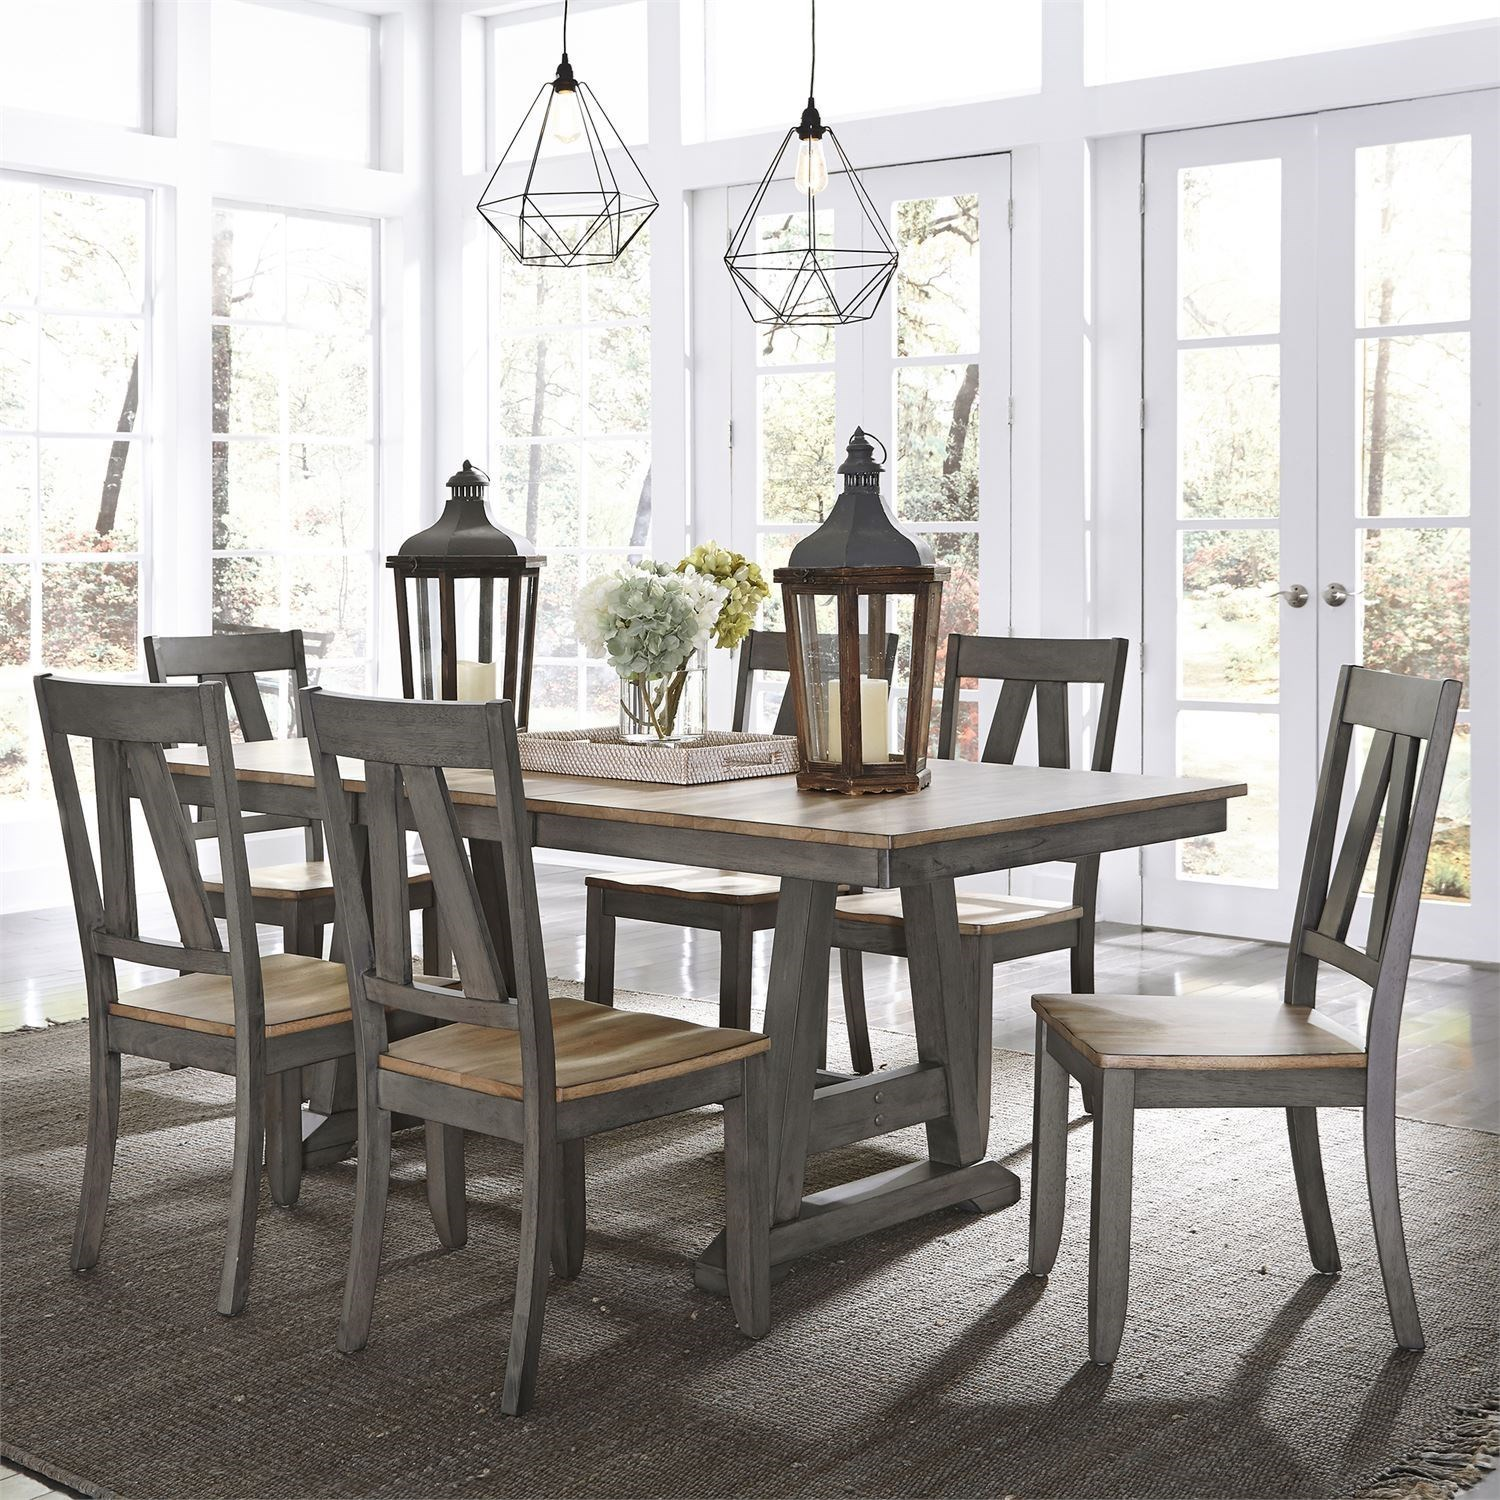 Transitional Two-Toned 7-Piece Trestle Table Set